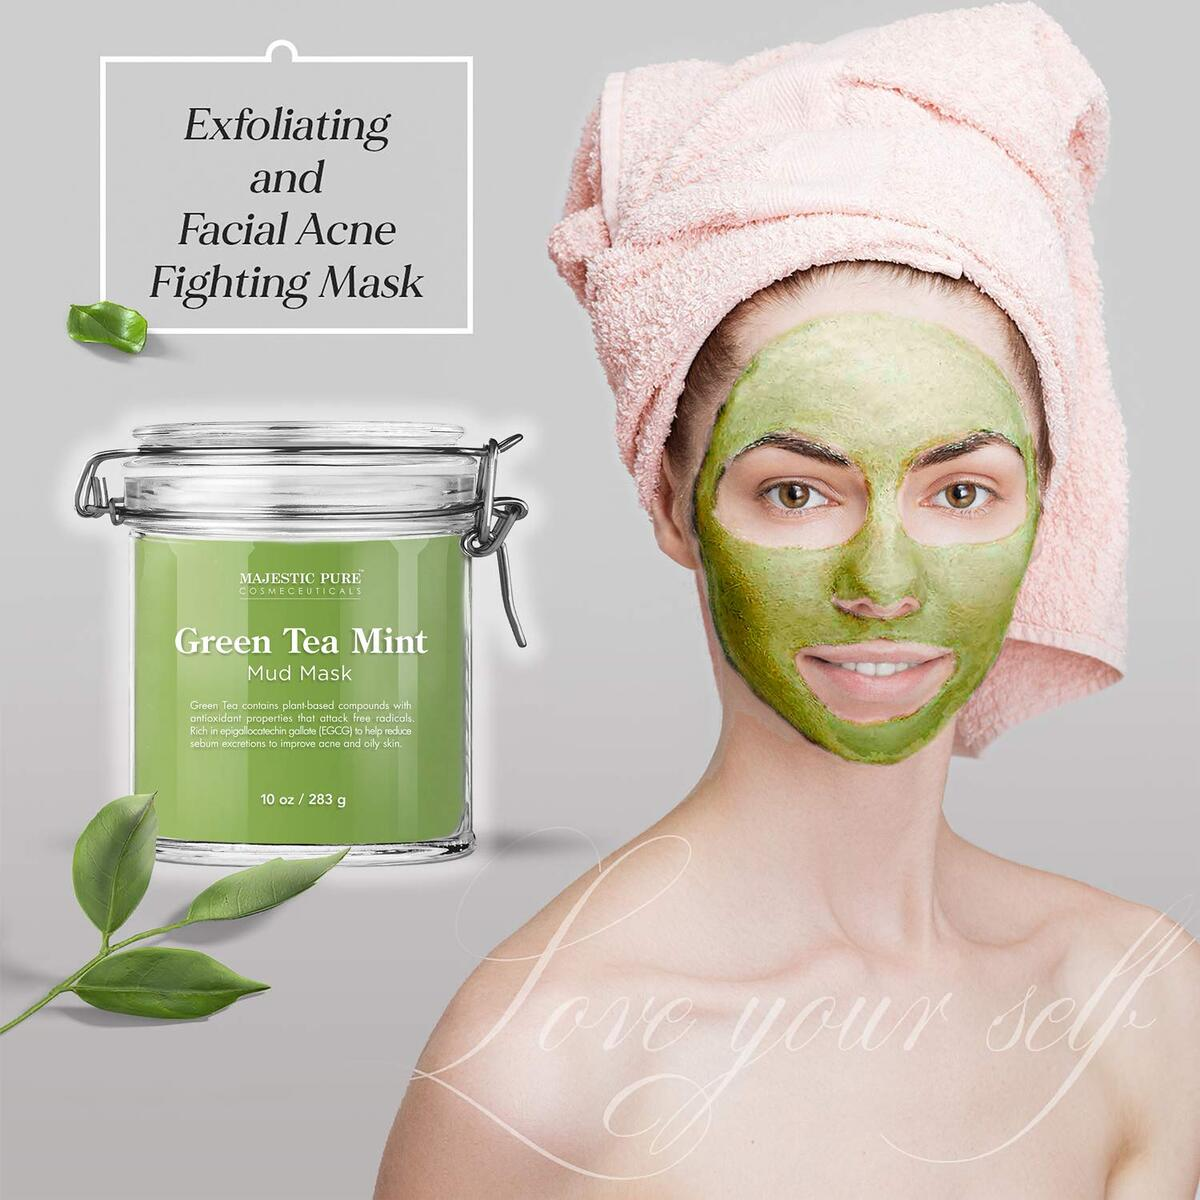 Green Tea Mint Mud Mask - Exfoliating Facial Face and Skin Mask for Blackhead and Acne - Rich in Antioxidant, Fight Free Radicals, 10 oz